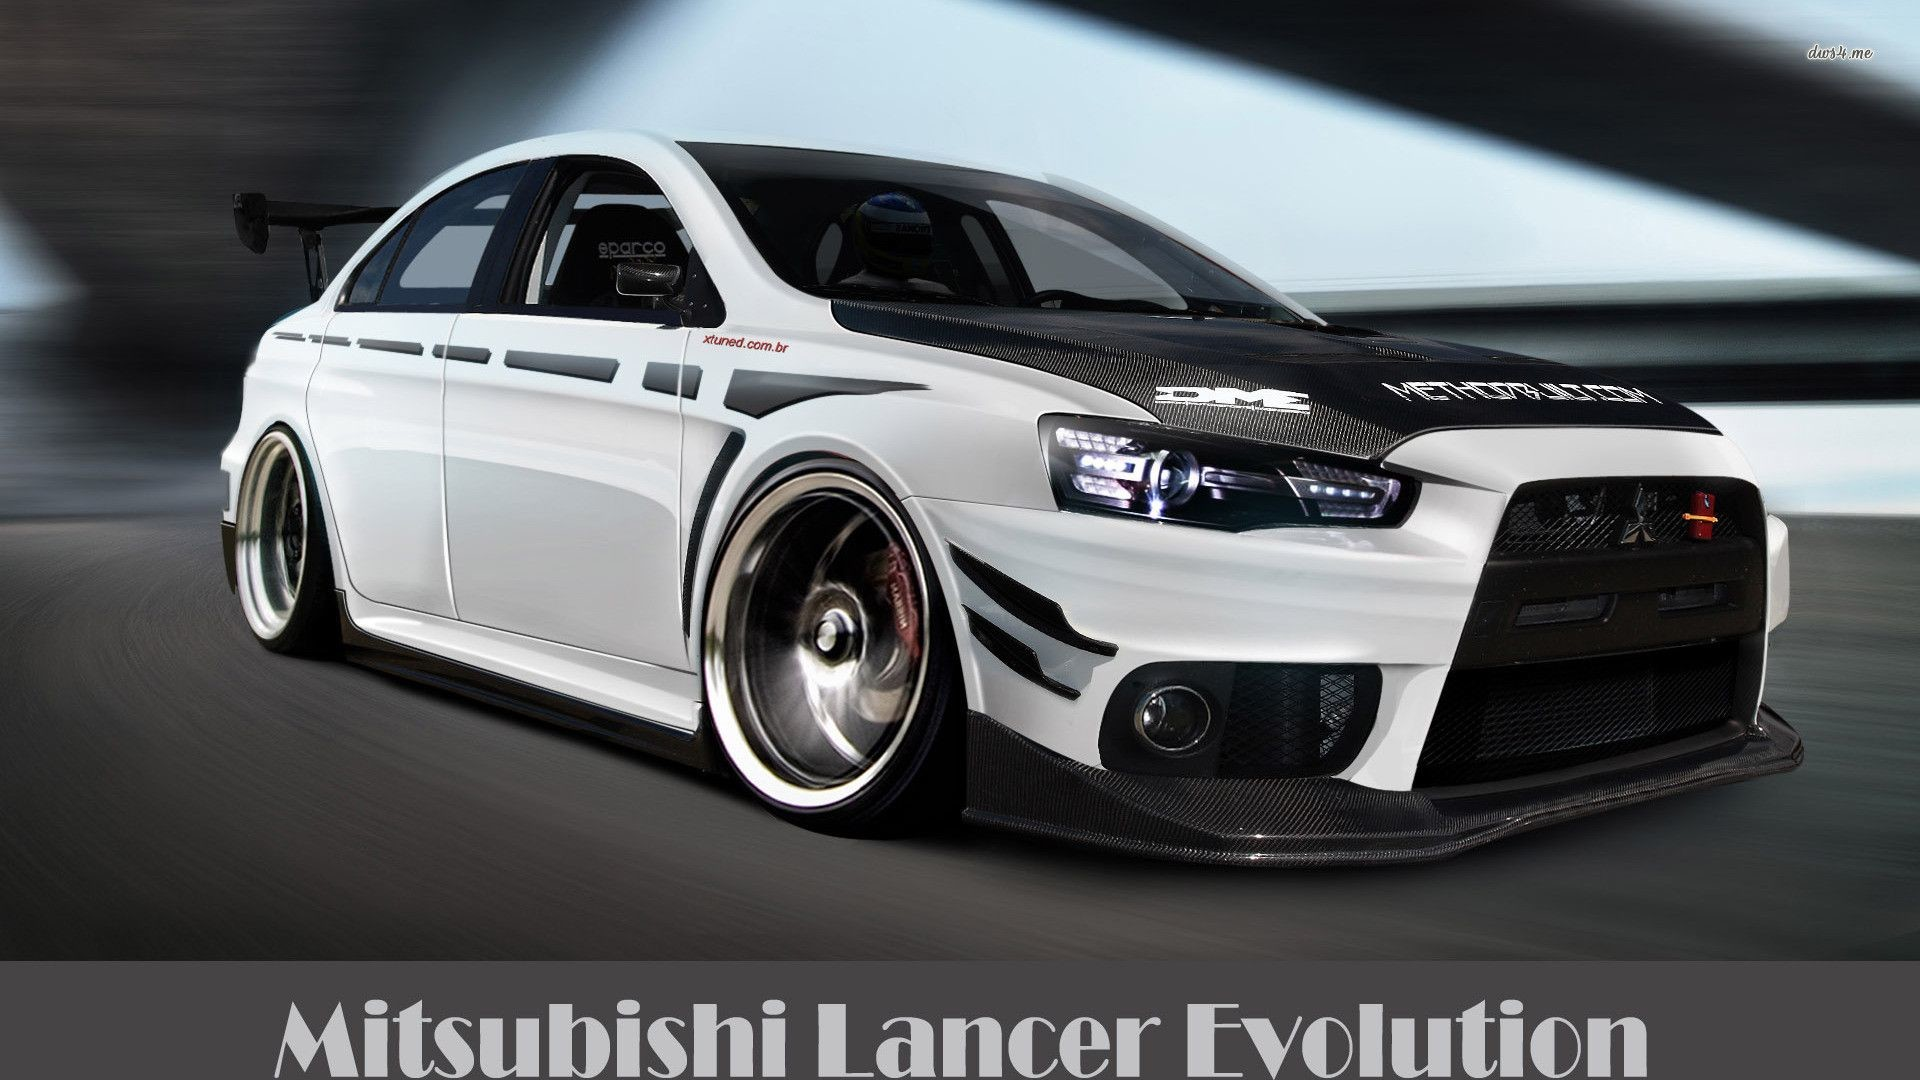 Mitsubishi Lancer Evolution X Wallpapers – Wallpaper Cave